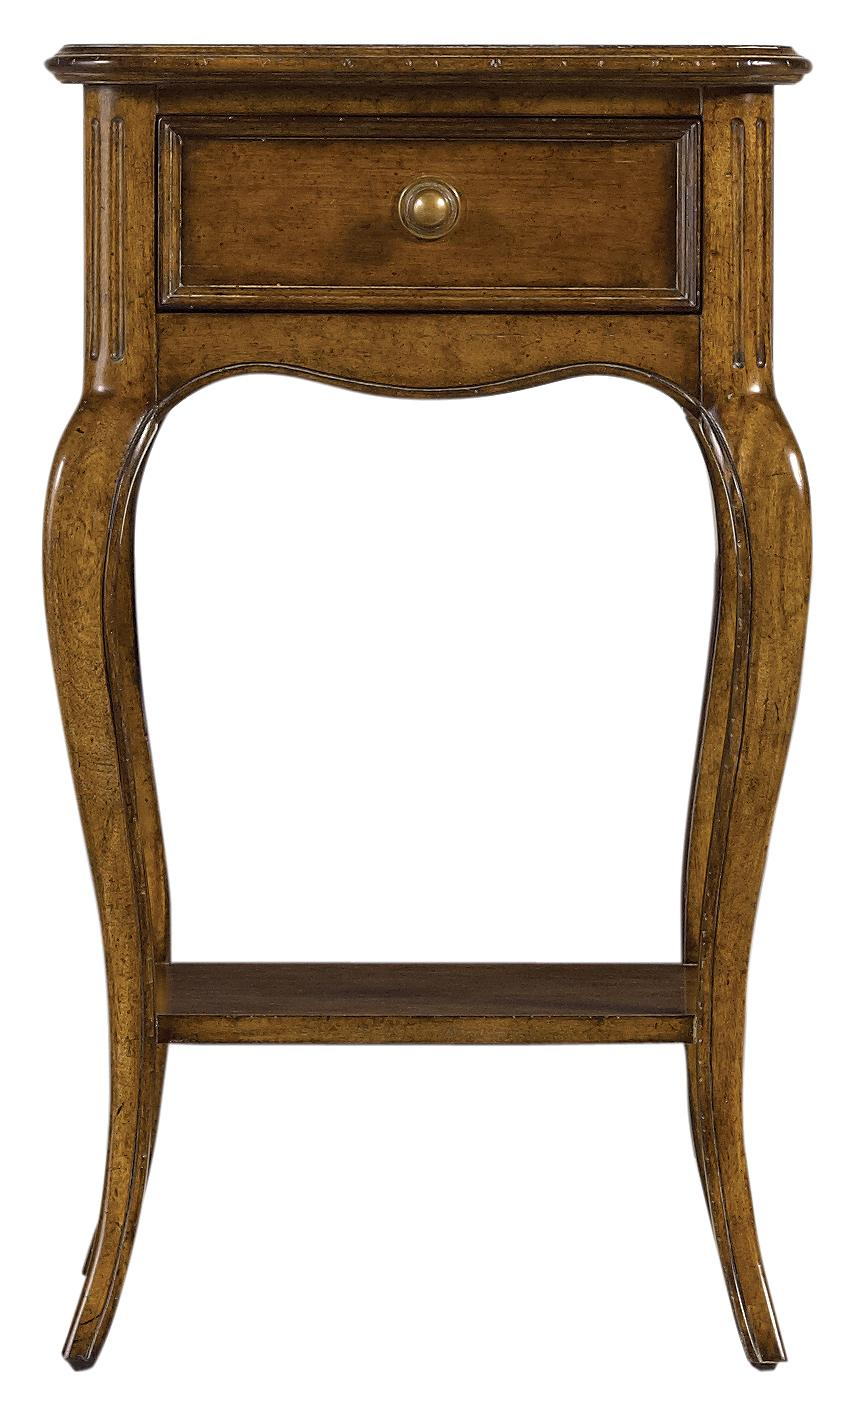 Stanley Furniture Arrondissement Arche Telephone Table - Item Number: 222-63-81